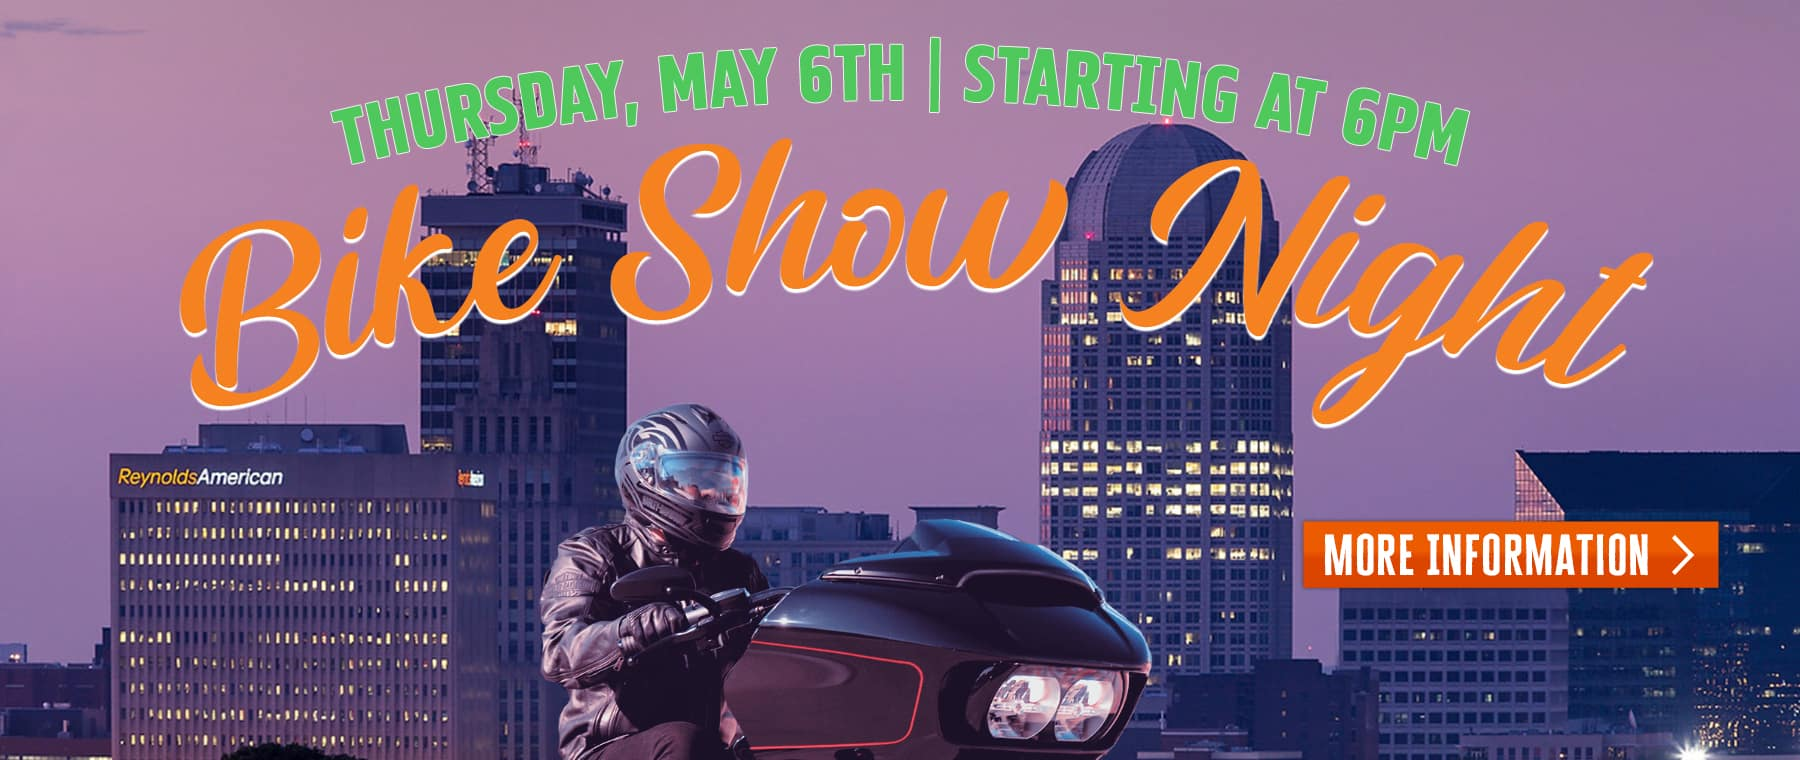 Bike Show Night – Web Banner 2